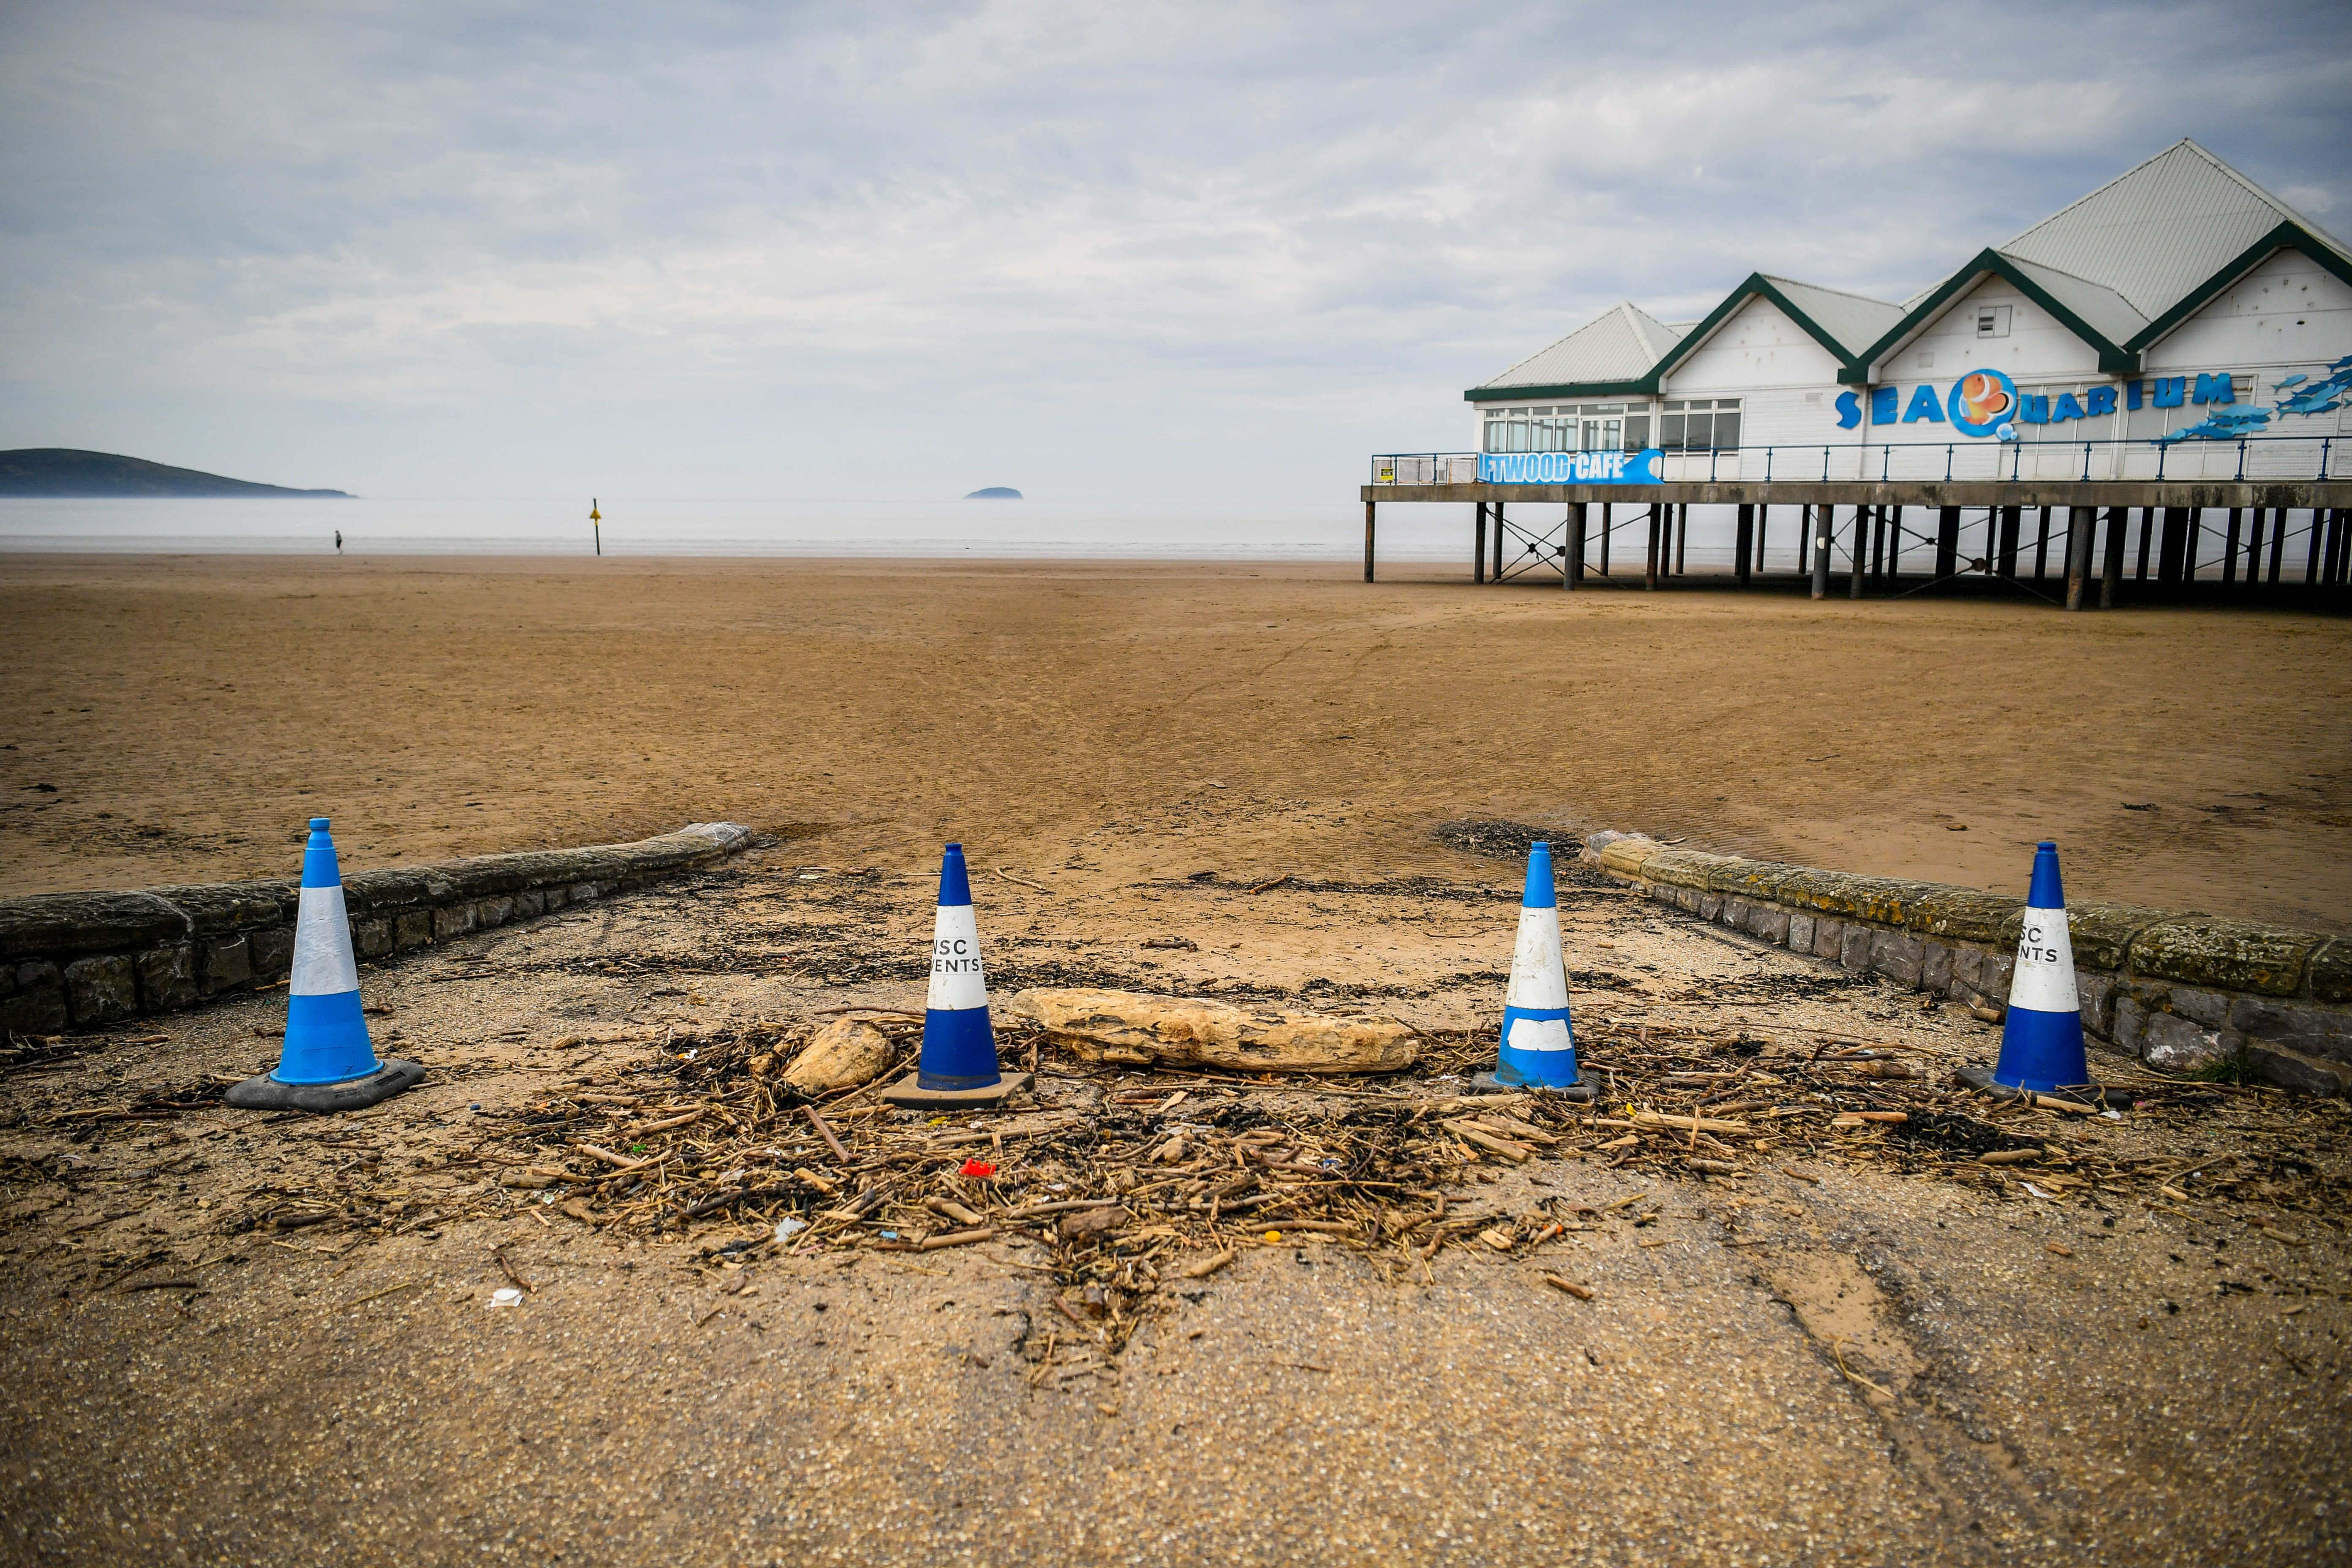 Cones and beach detritus block the entrance to a car parking section of beach around midday on Easter Sunday at Weston-super-Mare as the UK continues in lockdown to help curb the spread of the coronavirus.